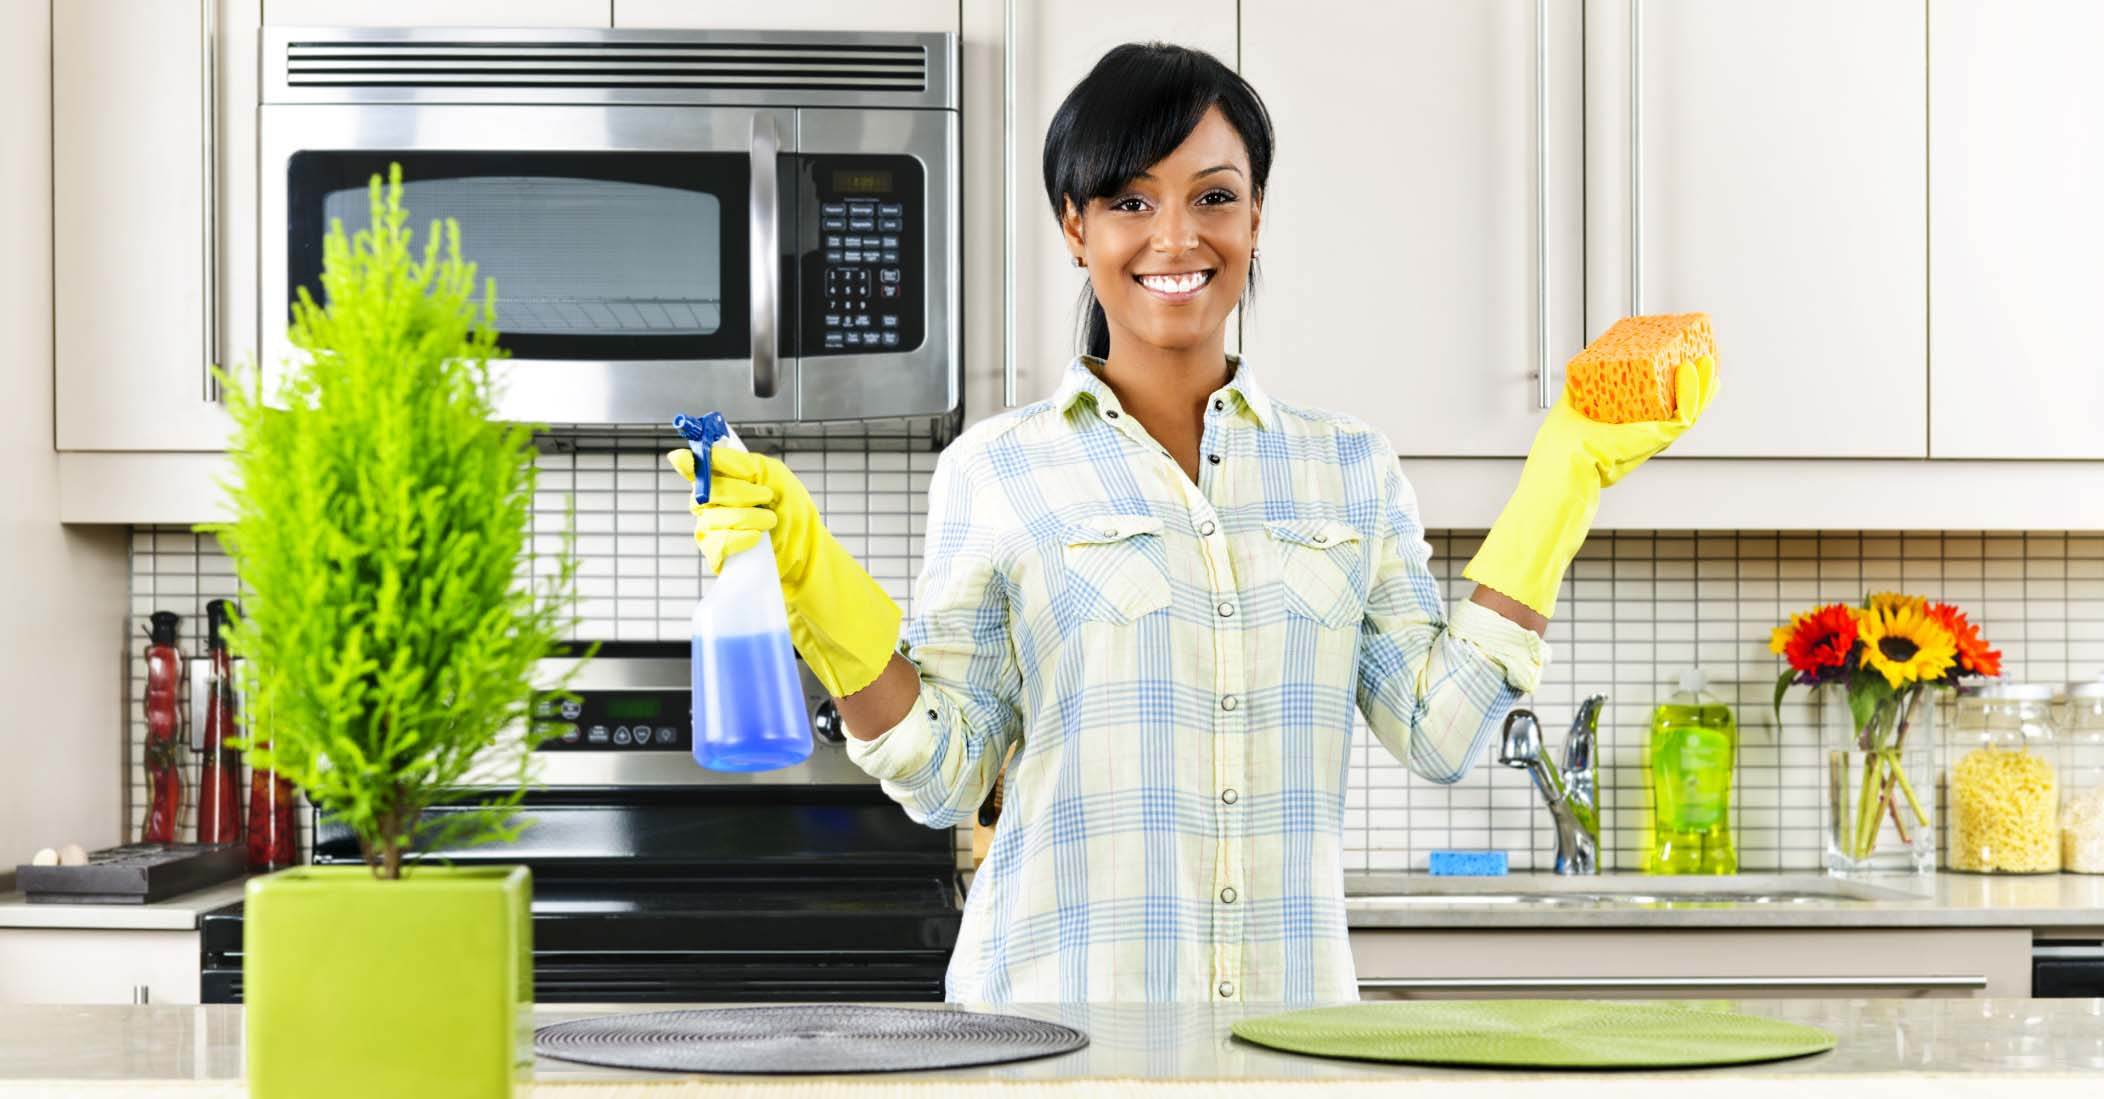 Clean Home clean home maintenance guide - king of maids cleaning services